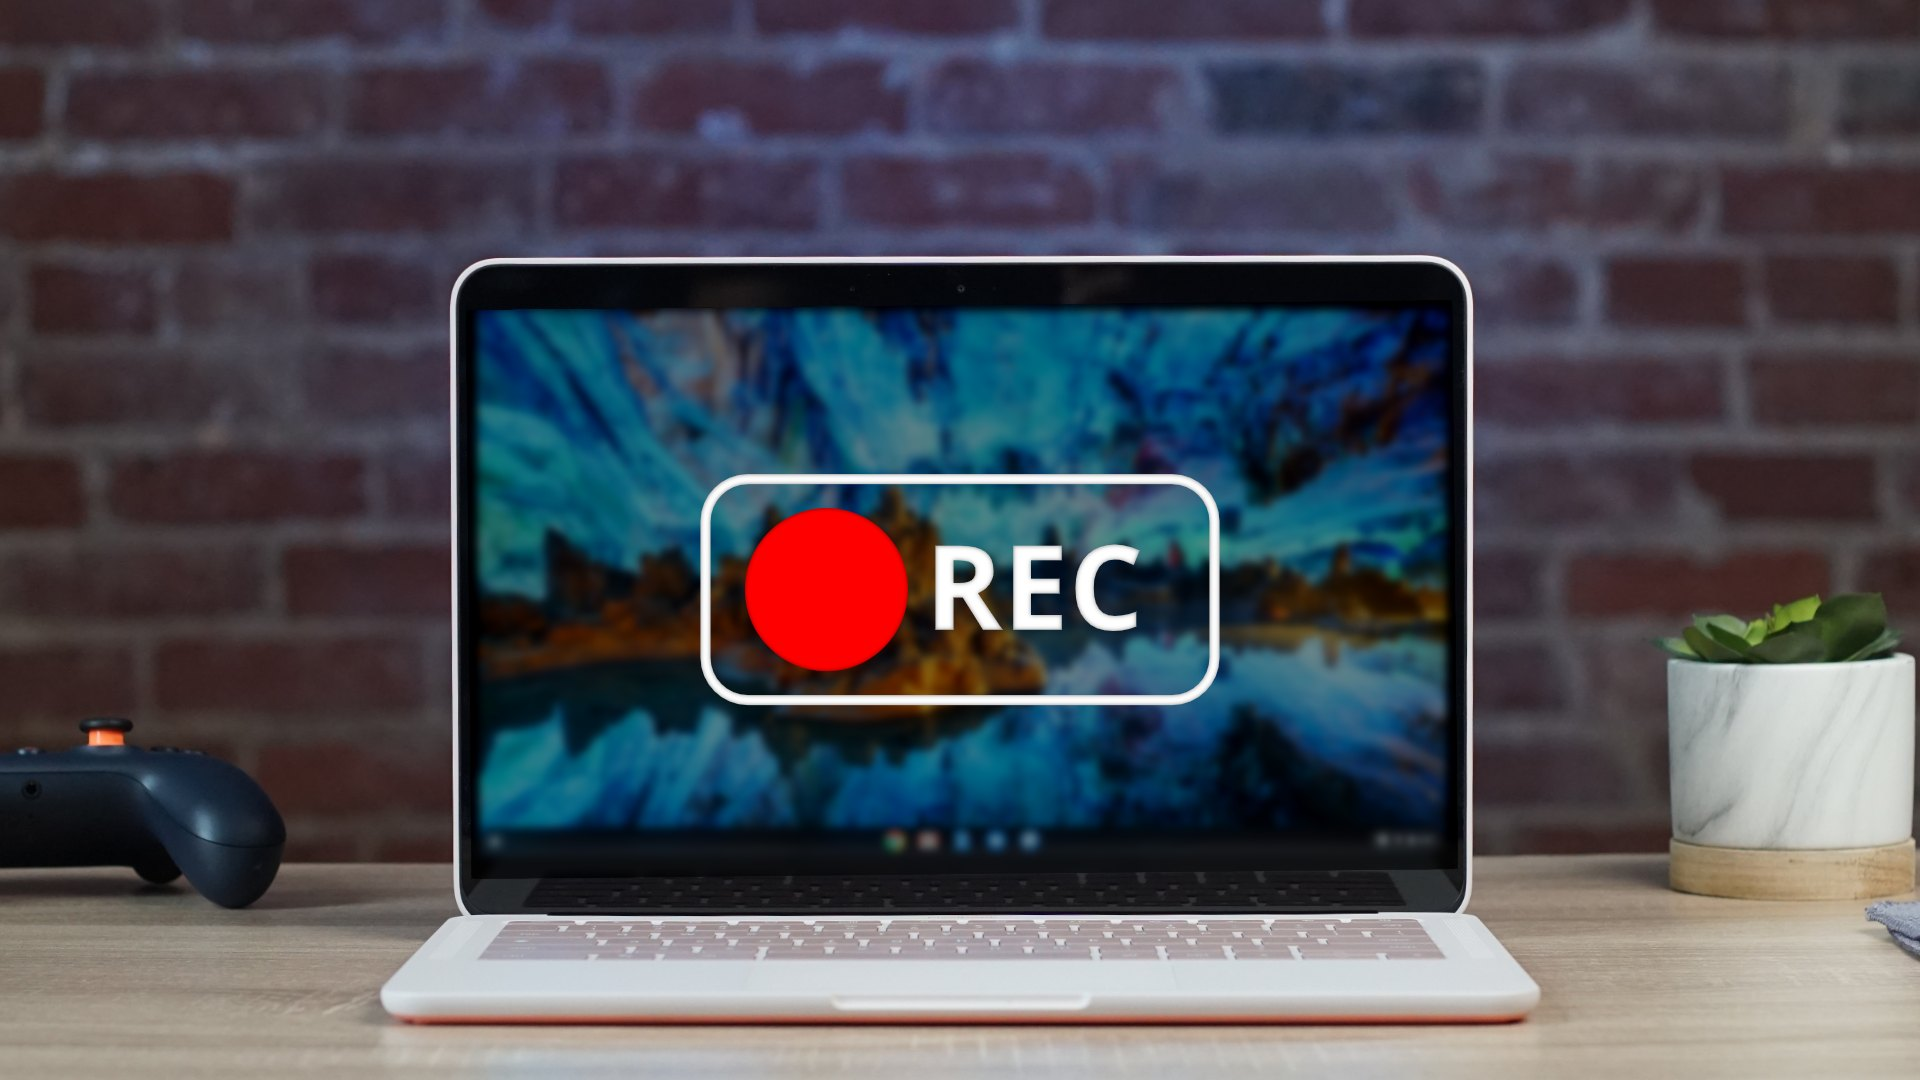 Chromebooks are getting a revamped screen capture UI with native screen recording